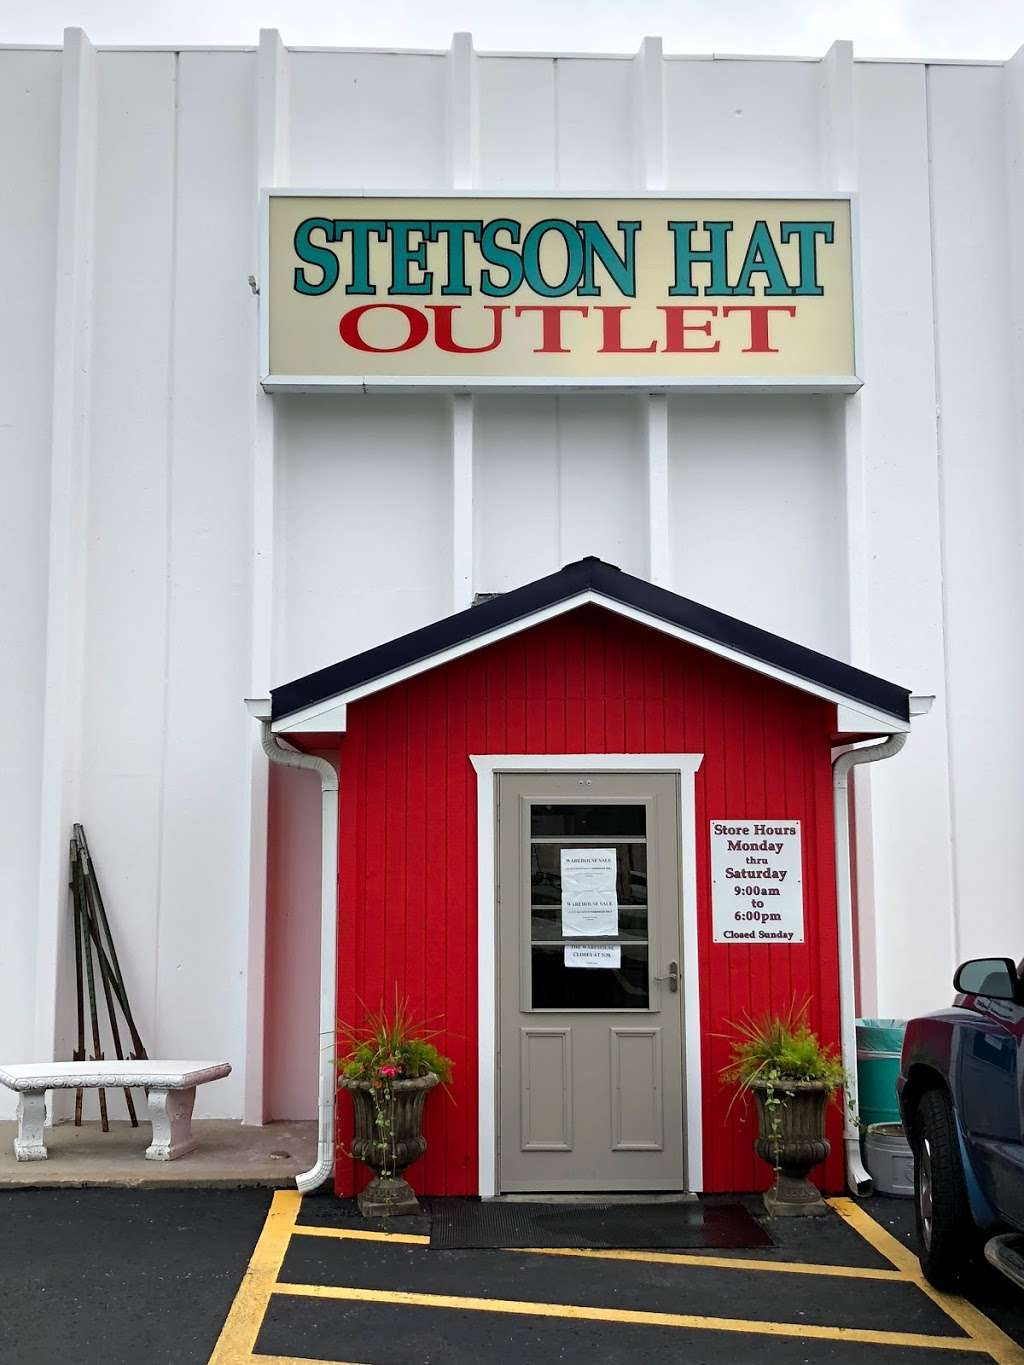 Stetson Hat Co Outlet Store - clothing store    Photo 5 of 10   Address: 3601 S Leonard Rd, St Joseph, MO 64503, USA   Phone: (816) 233-3286